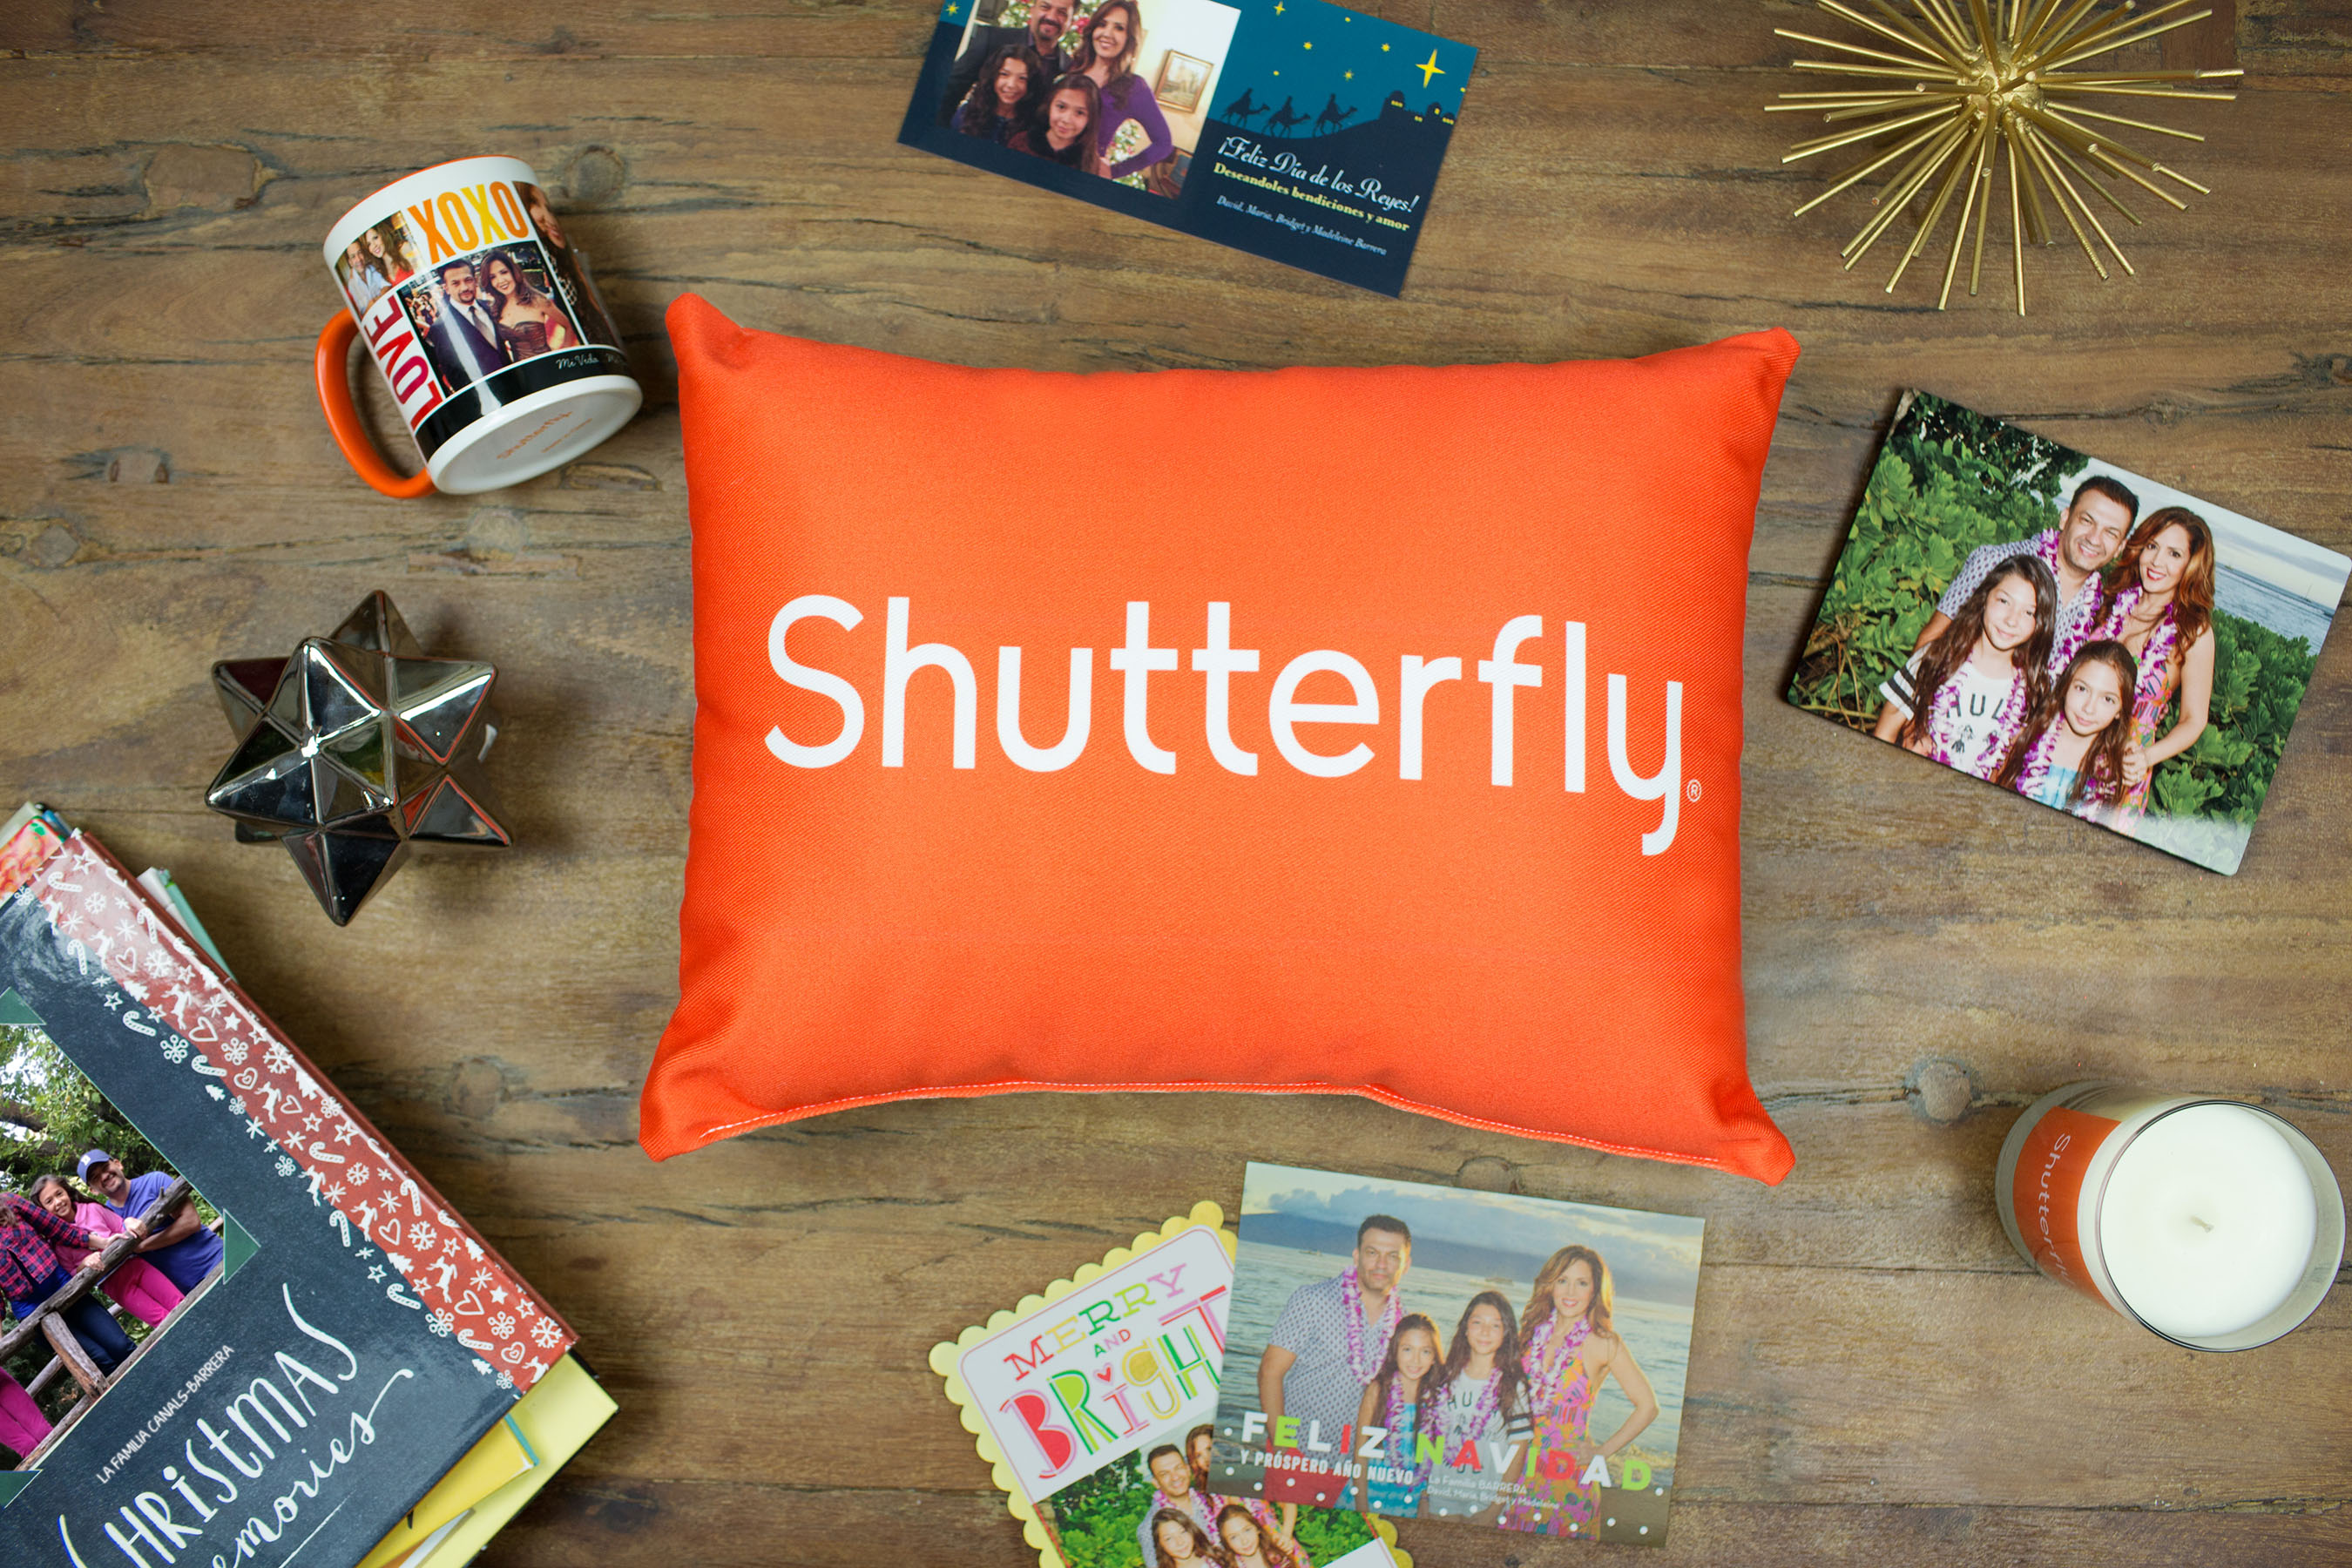 SHUTTERFLY PUTS THE ACCENT ON YOUR CELEBRACIN THIS